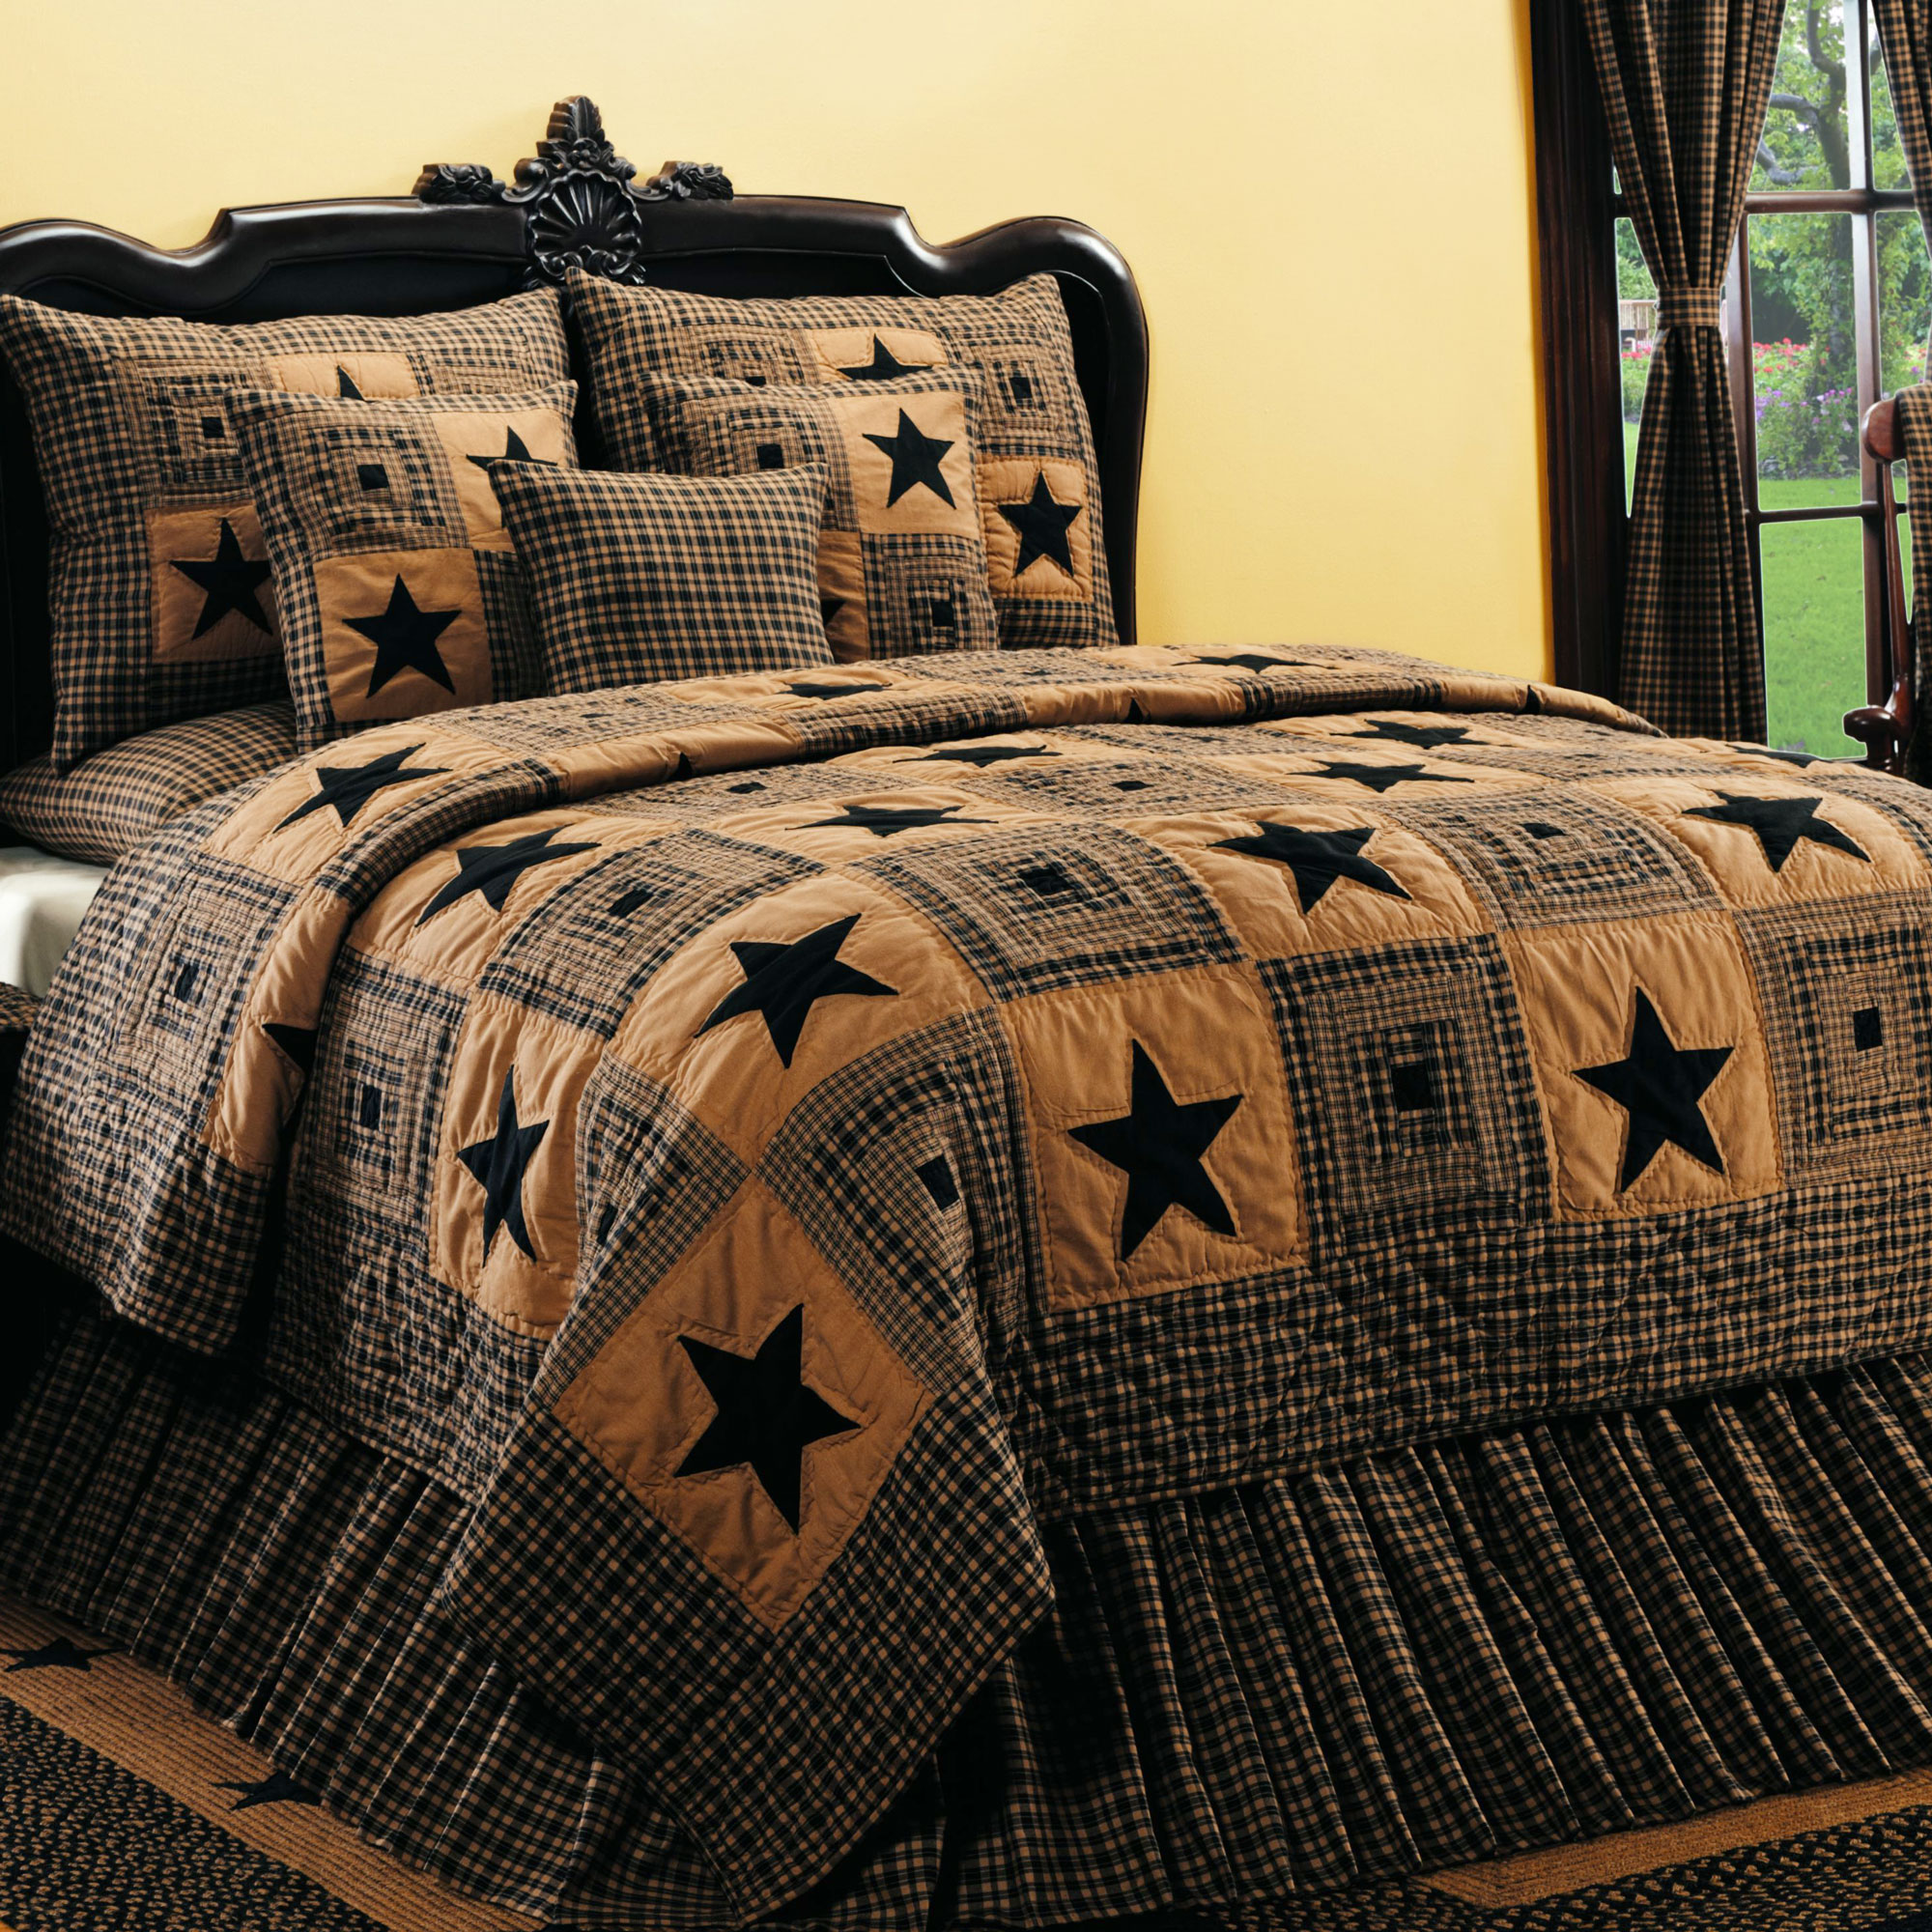 Awesome king size quilts for modern bedroom design with king size quilt dimensions